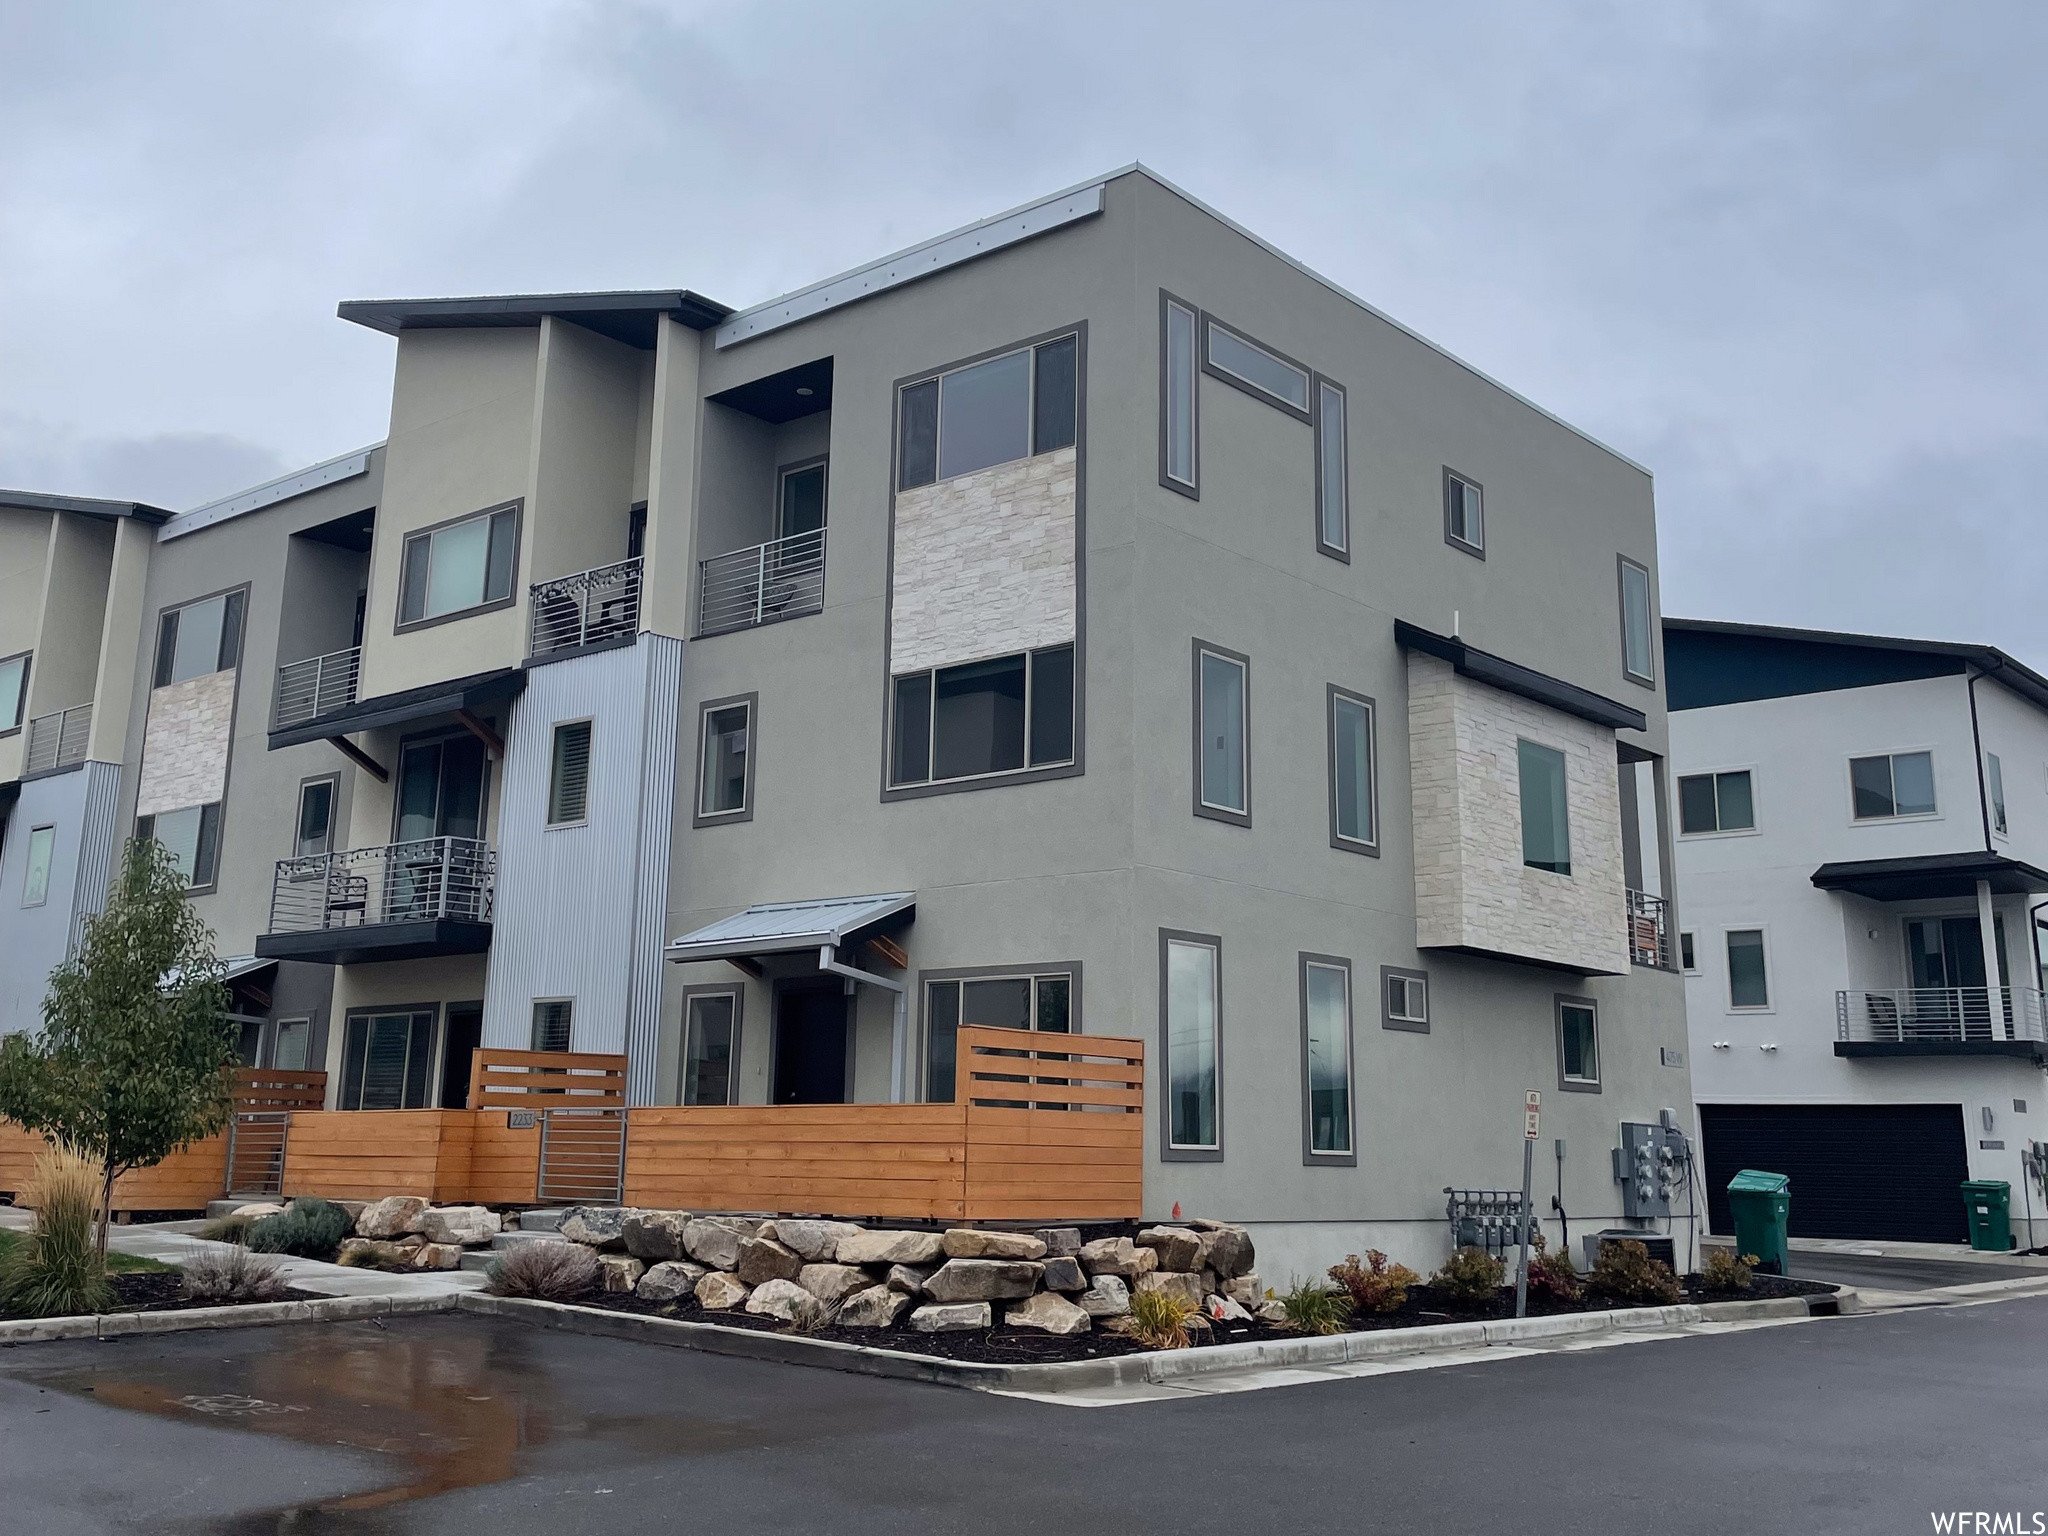 Townhouse In Layton